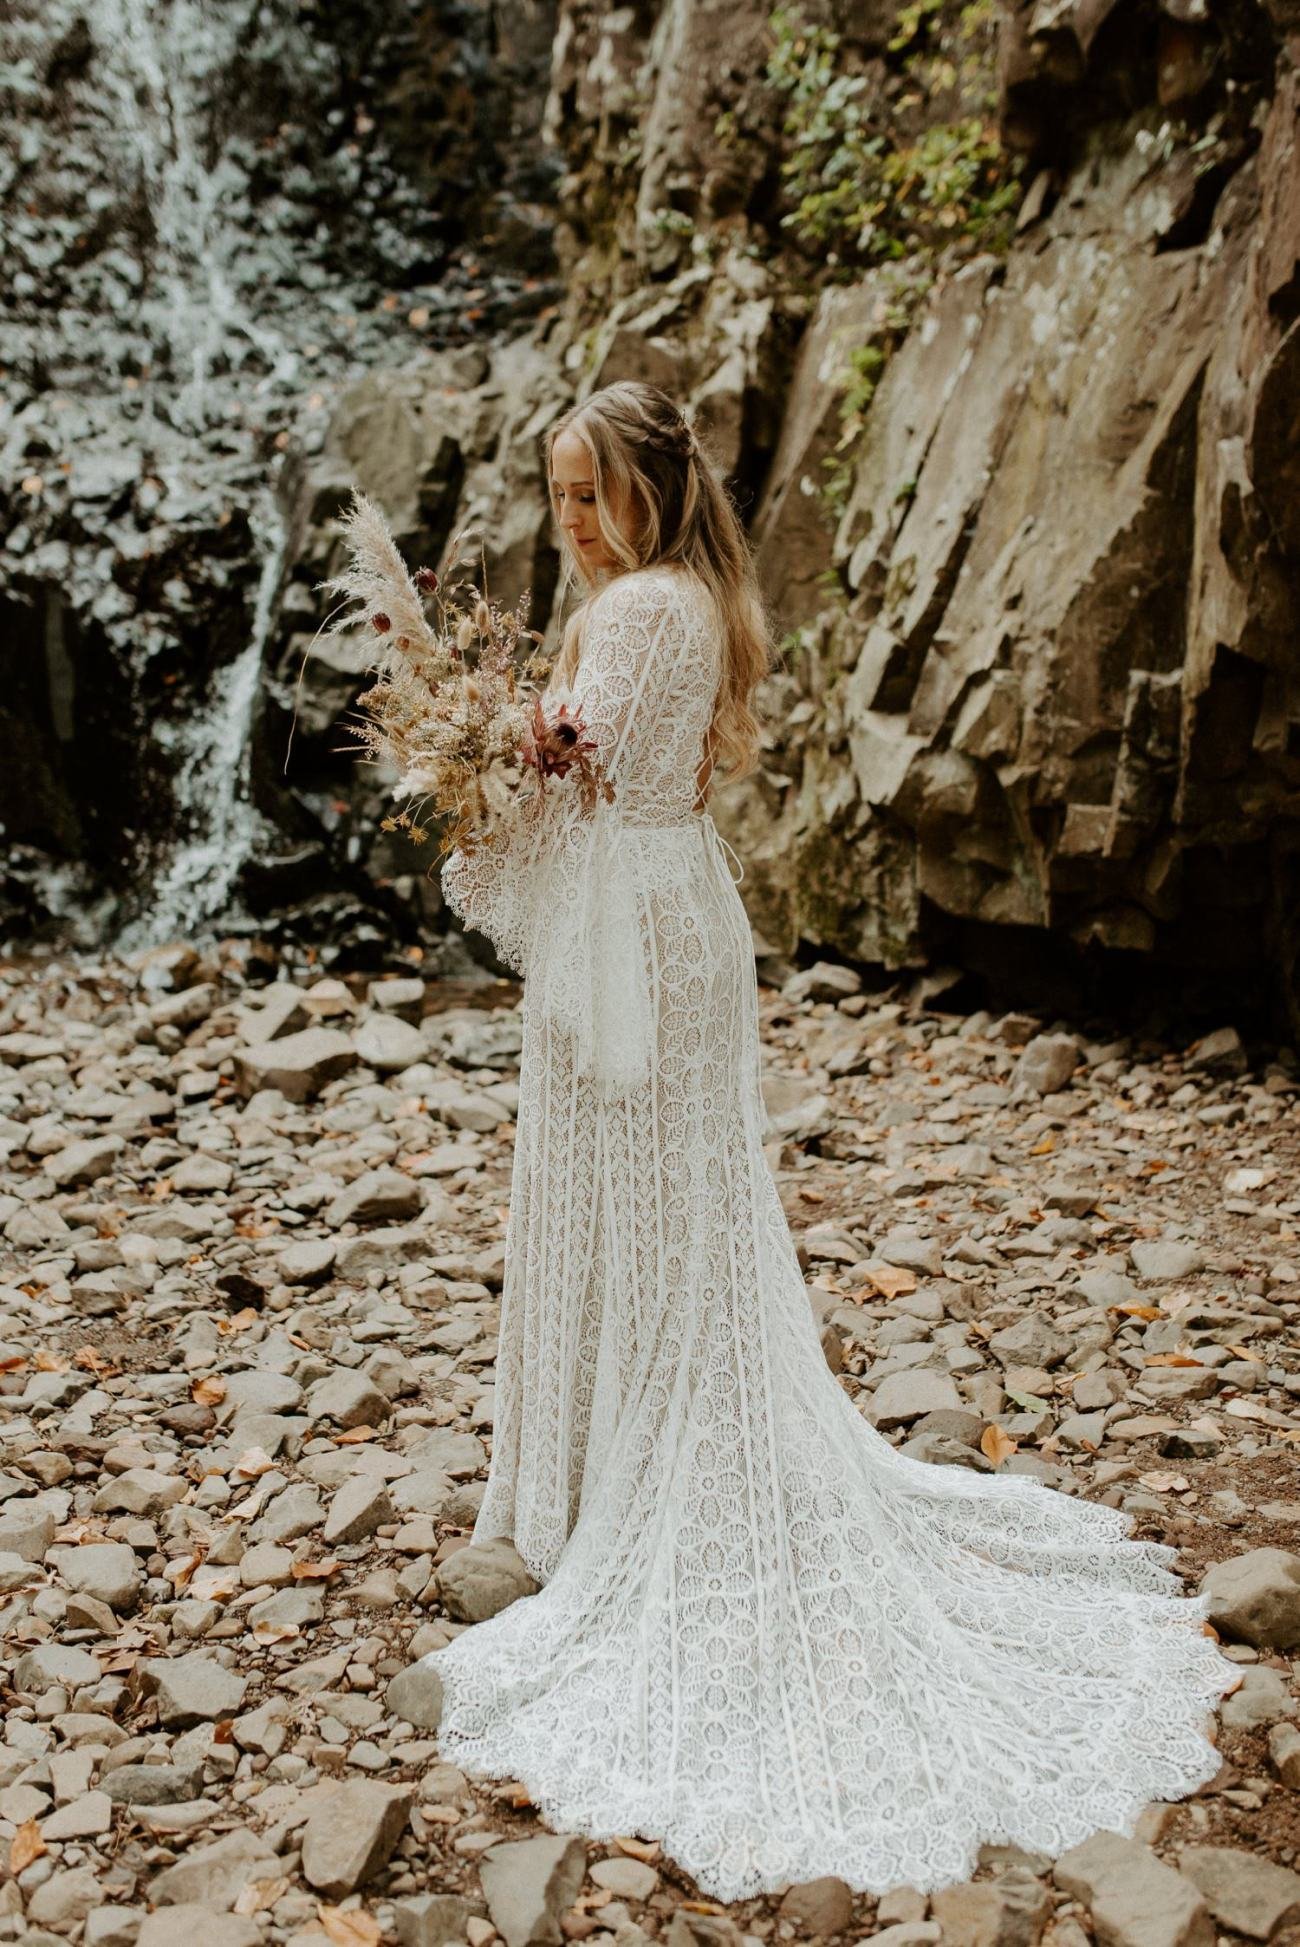 New Jersey Backyard Wedding Vintage Boho Wedding Hemlock Falls NJ Bend Oregon Wedding Phtographer Anais Possamai Photography 015